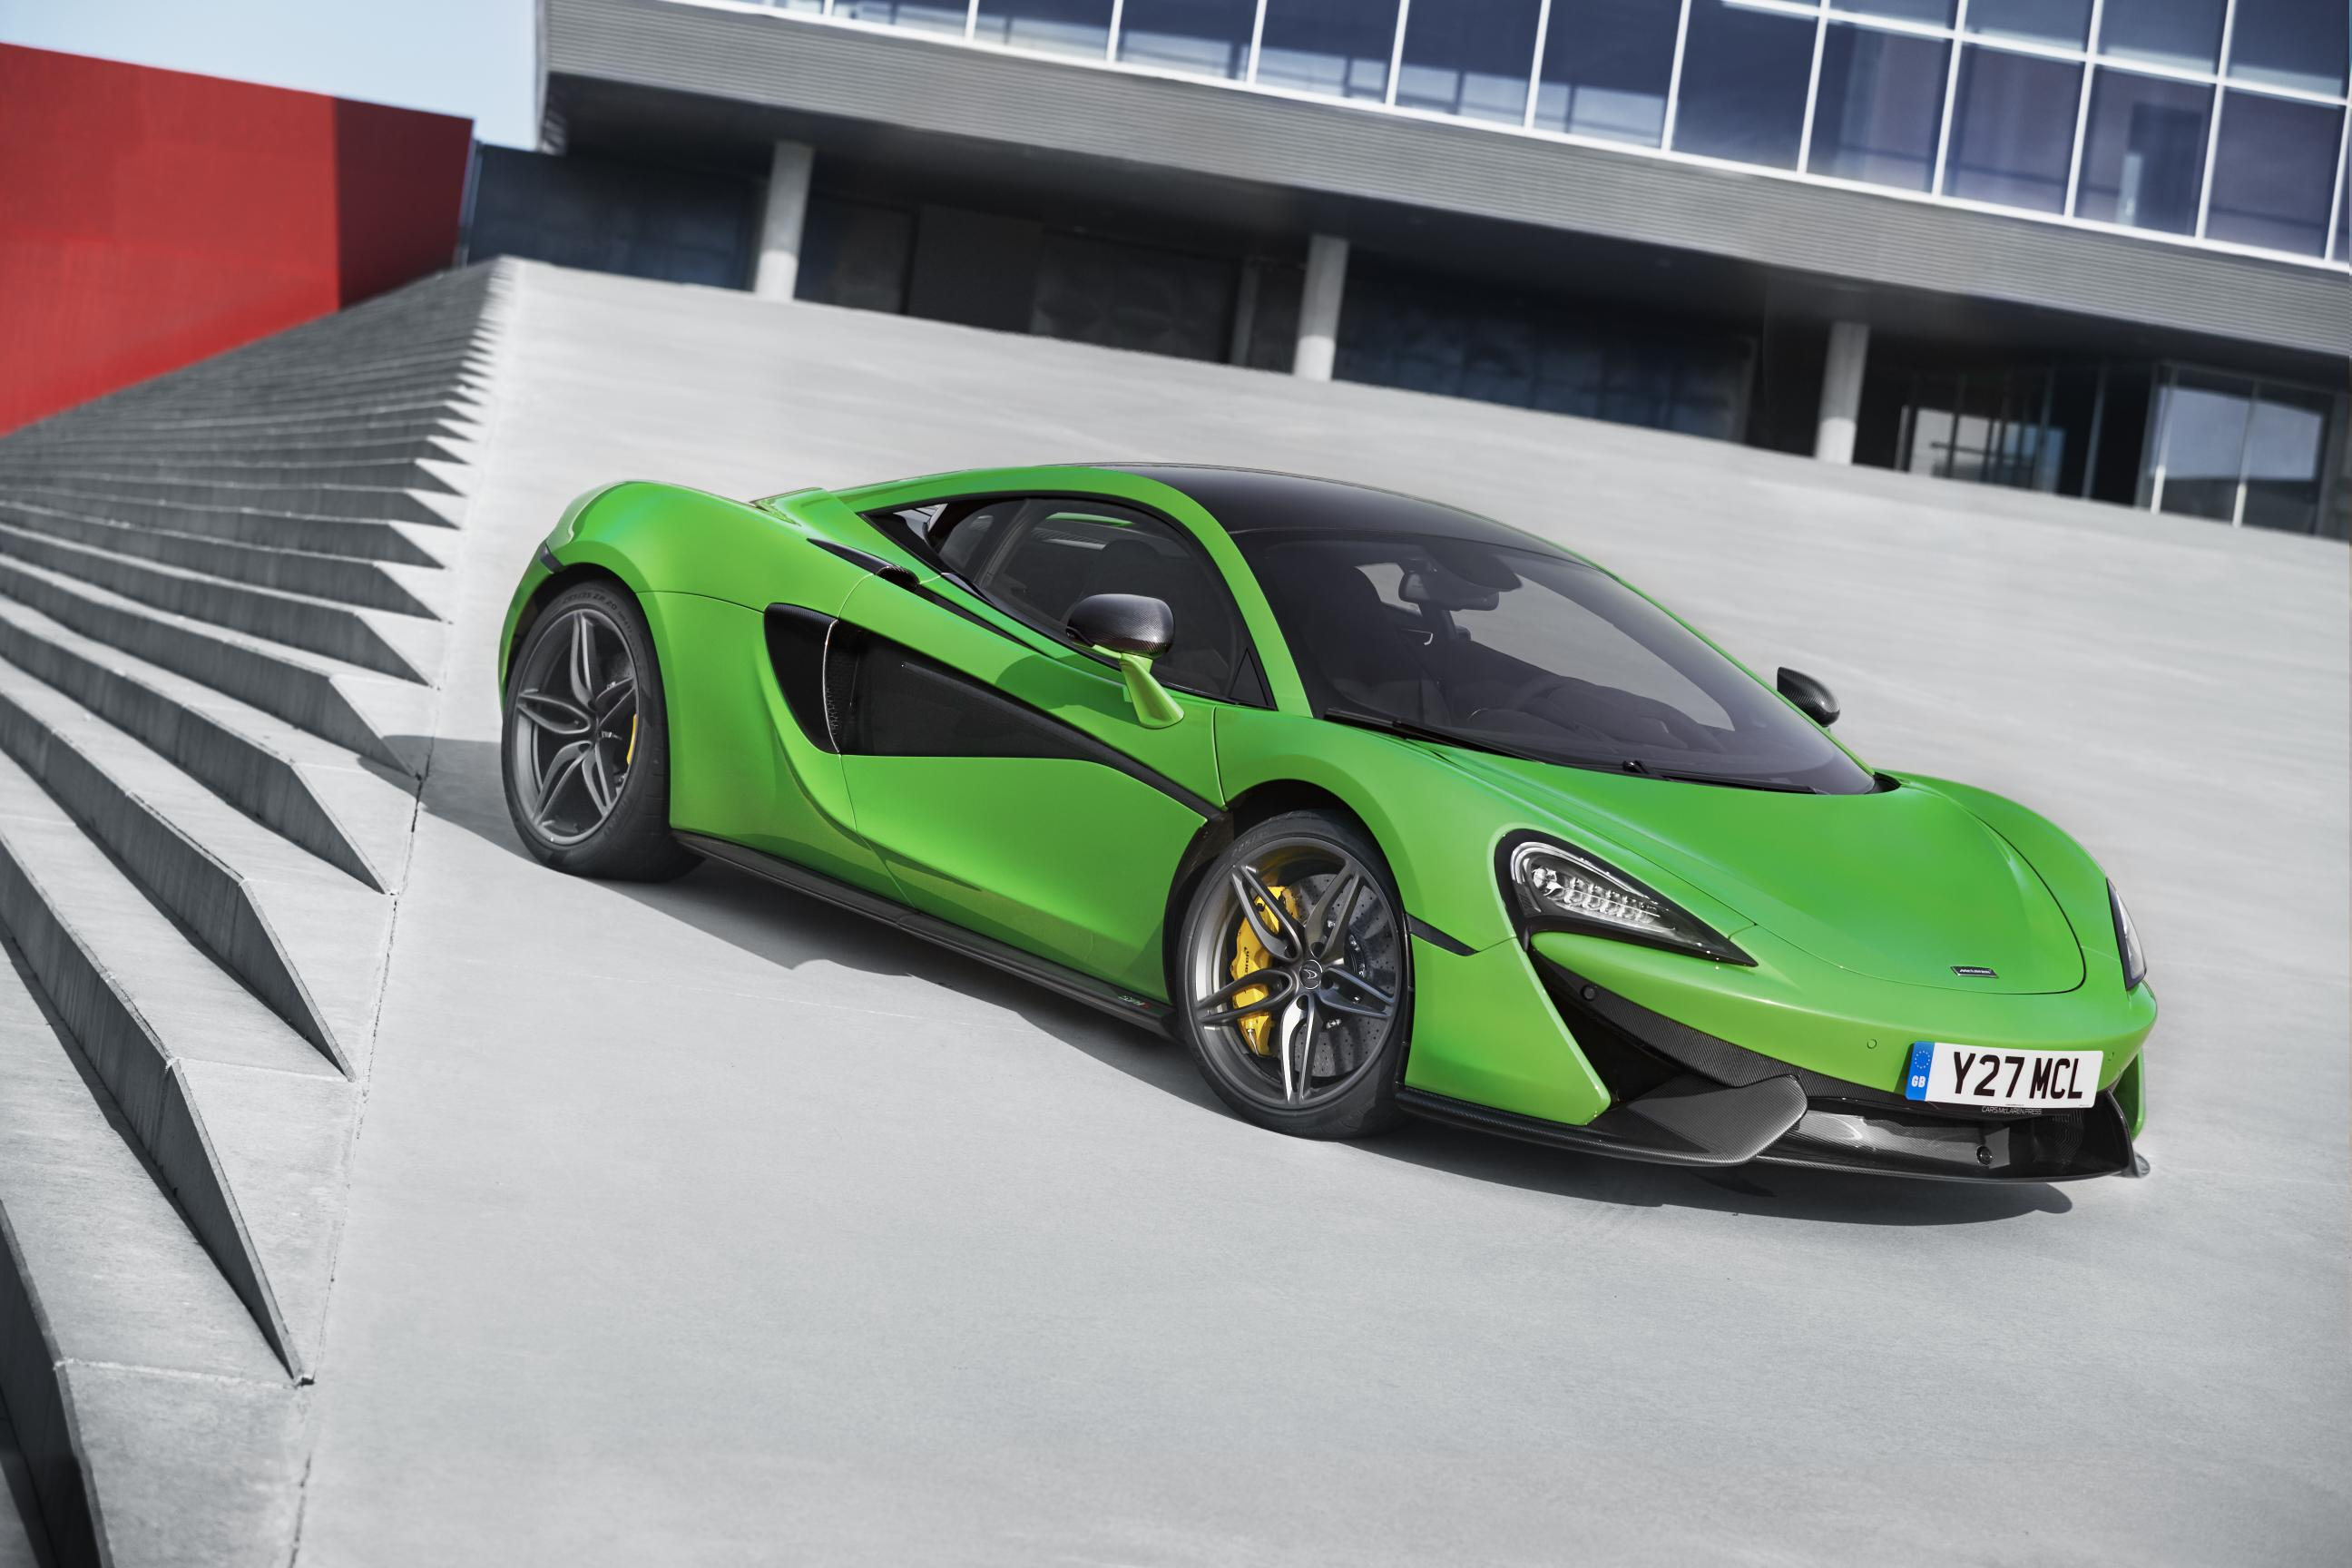 Where does McLaren build its British sports cars?